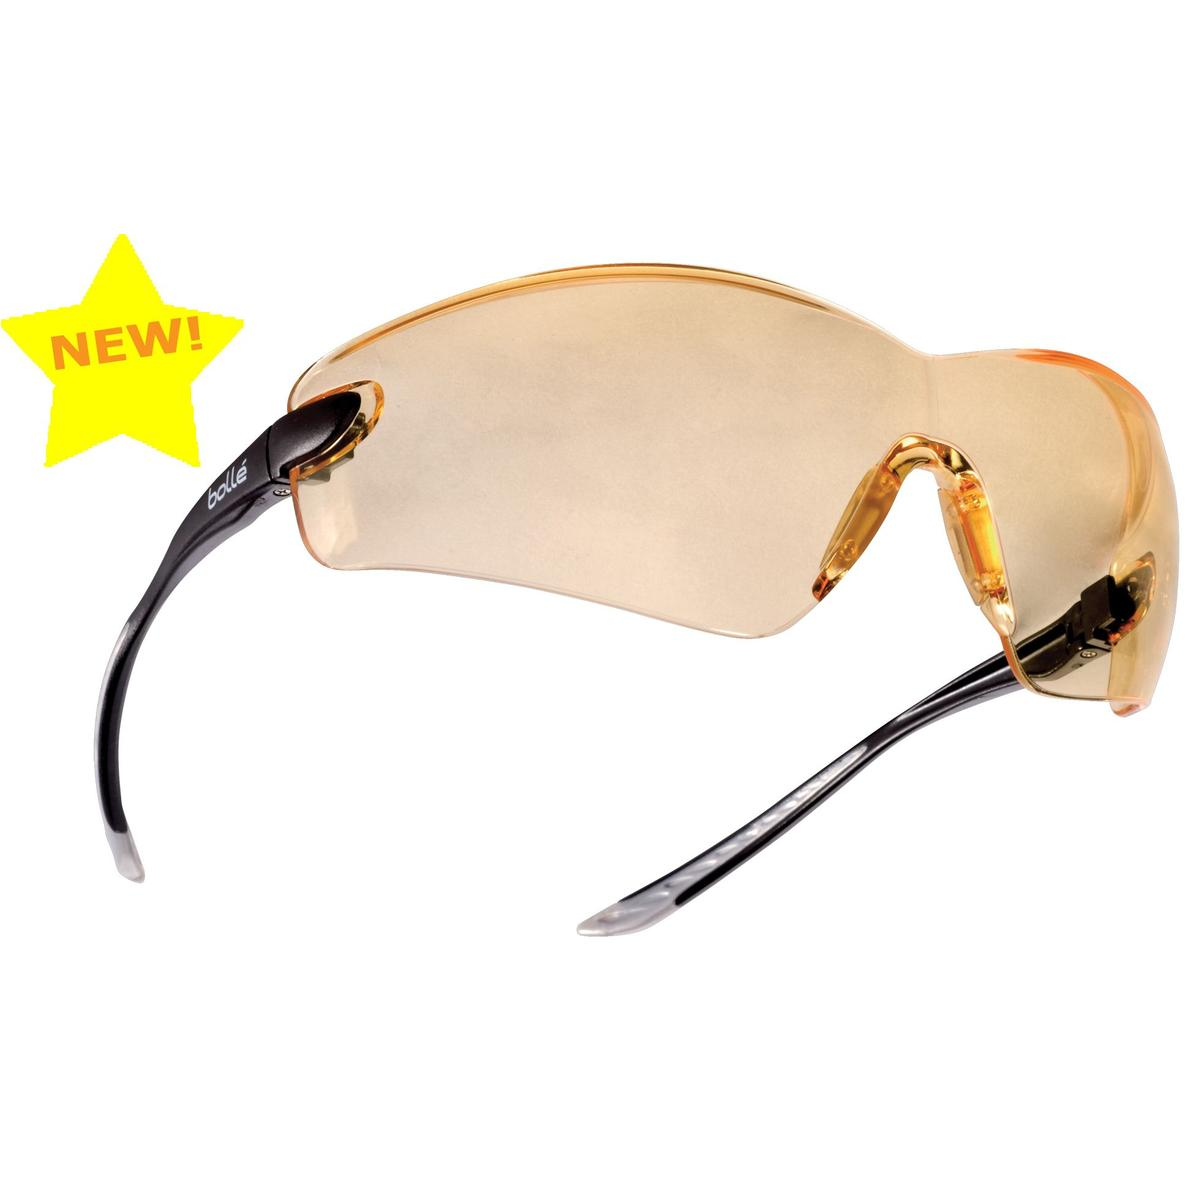 Bolle Cobra Platinum Safety Glasses Clear Lenses Wrap-around Fit Anti-scratch